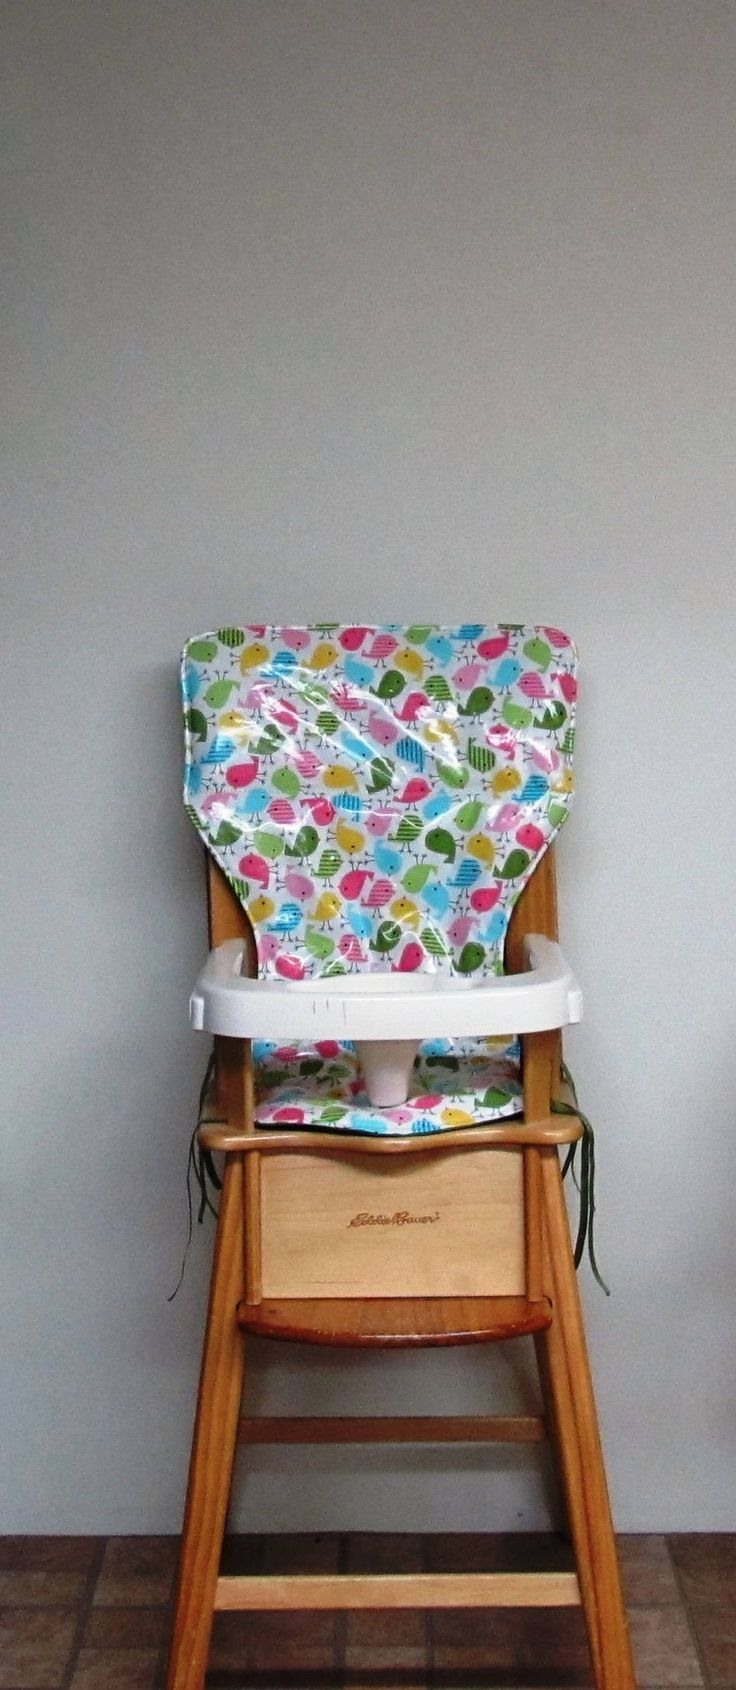 Jenny Lind High Chair Cover - Baby chair cover laminated cotton wood high chair pad baby accessory eddie bauer replacement high chair pad jenny lind chair pad chicks